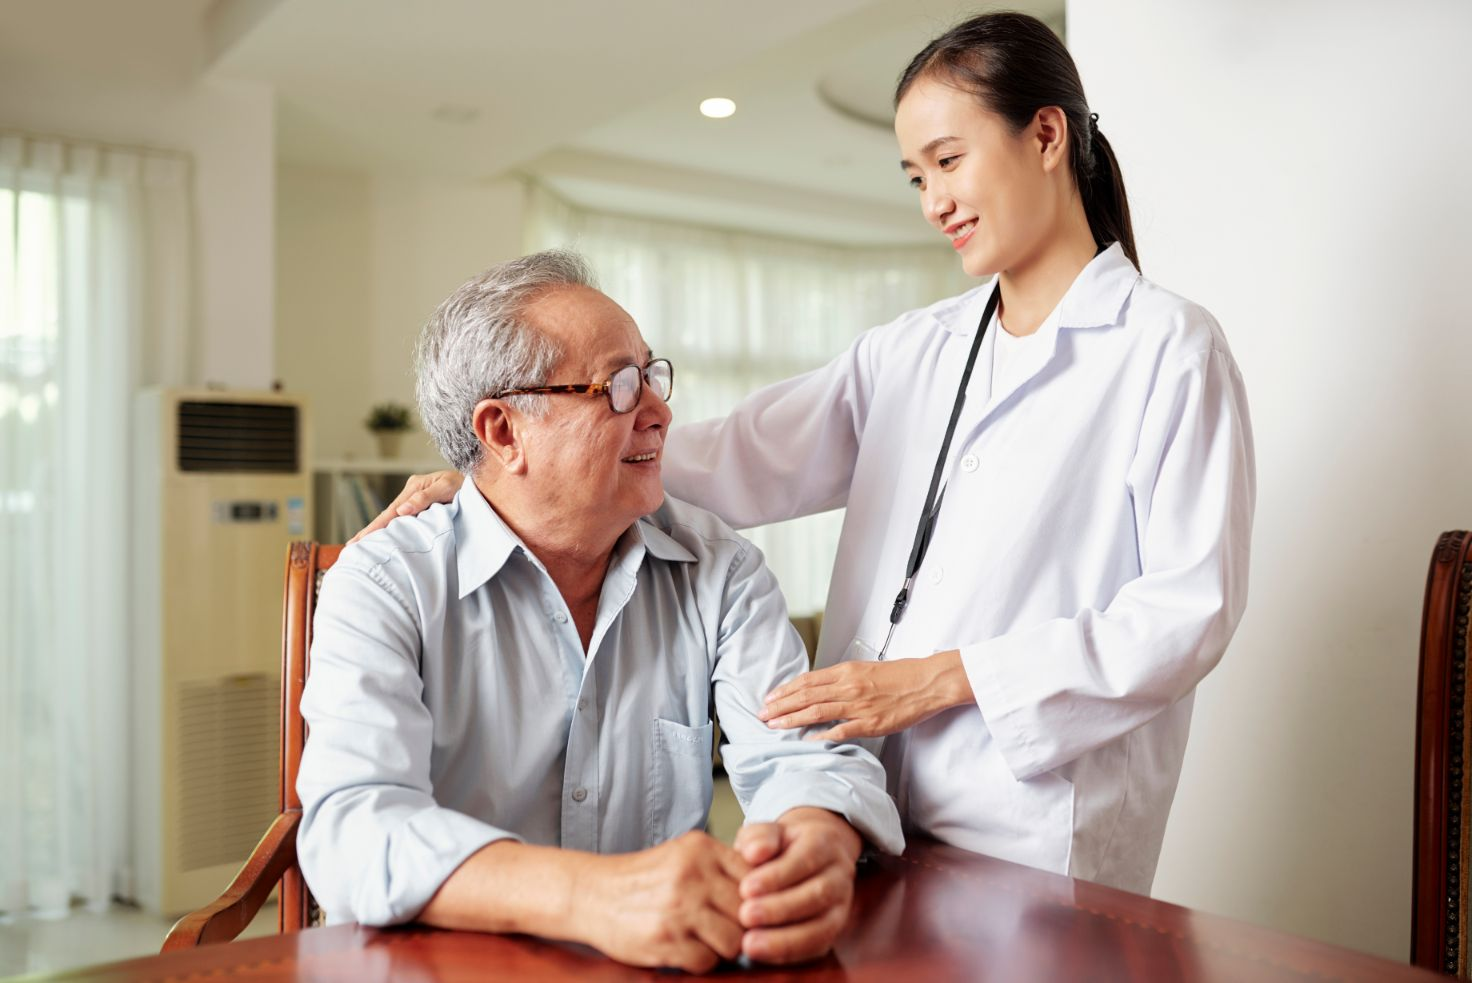 The_Advantages_of_Receiving_Medical_Treatments_at_Home